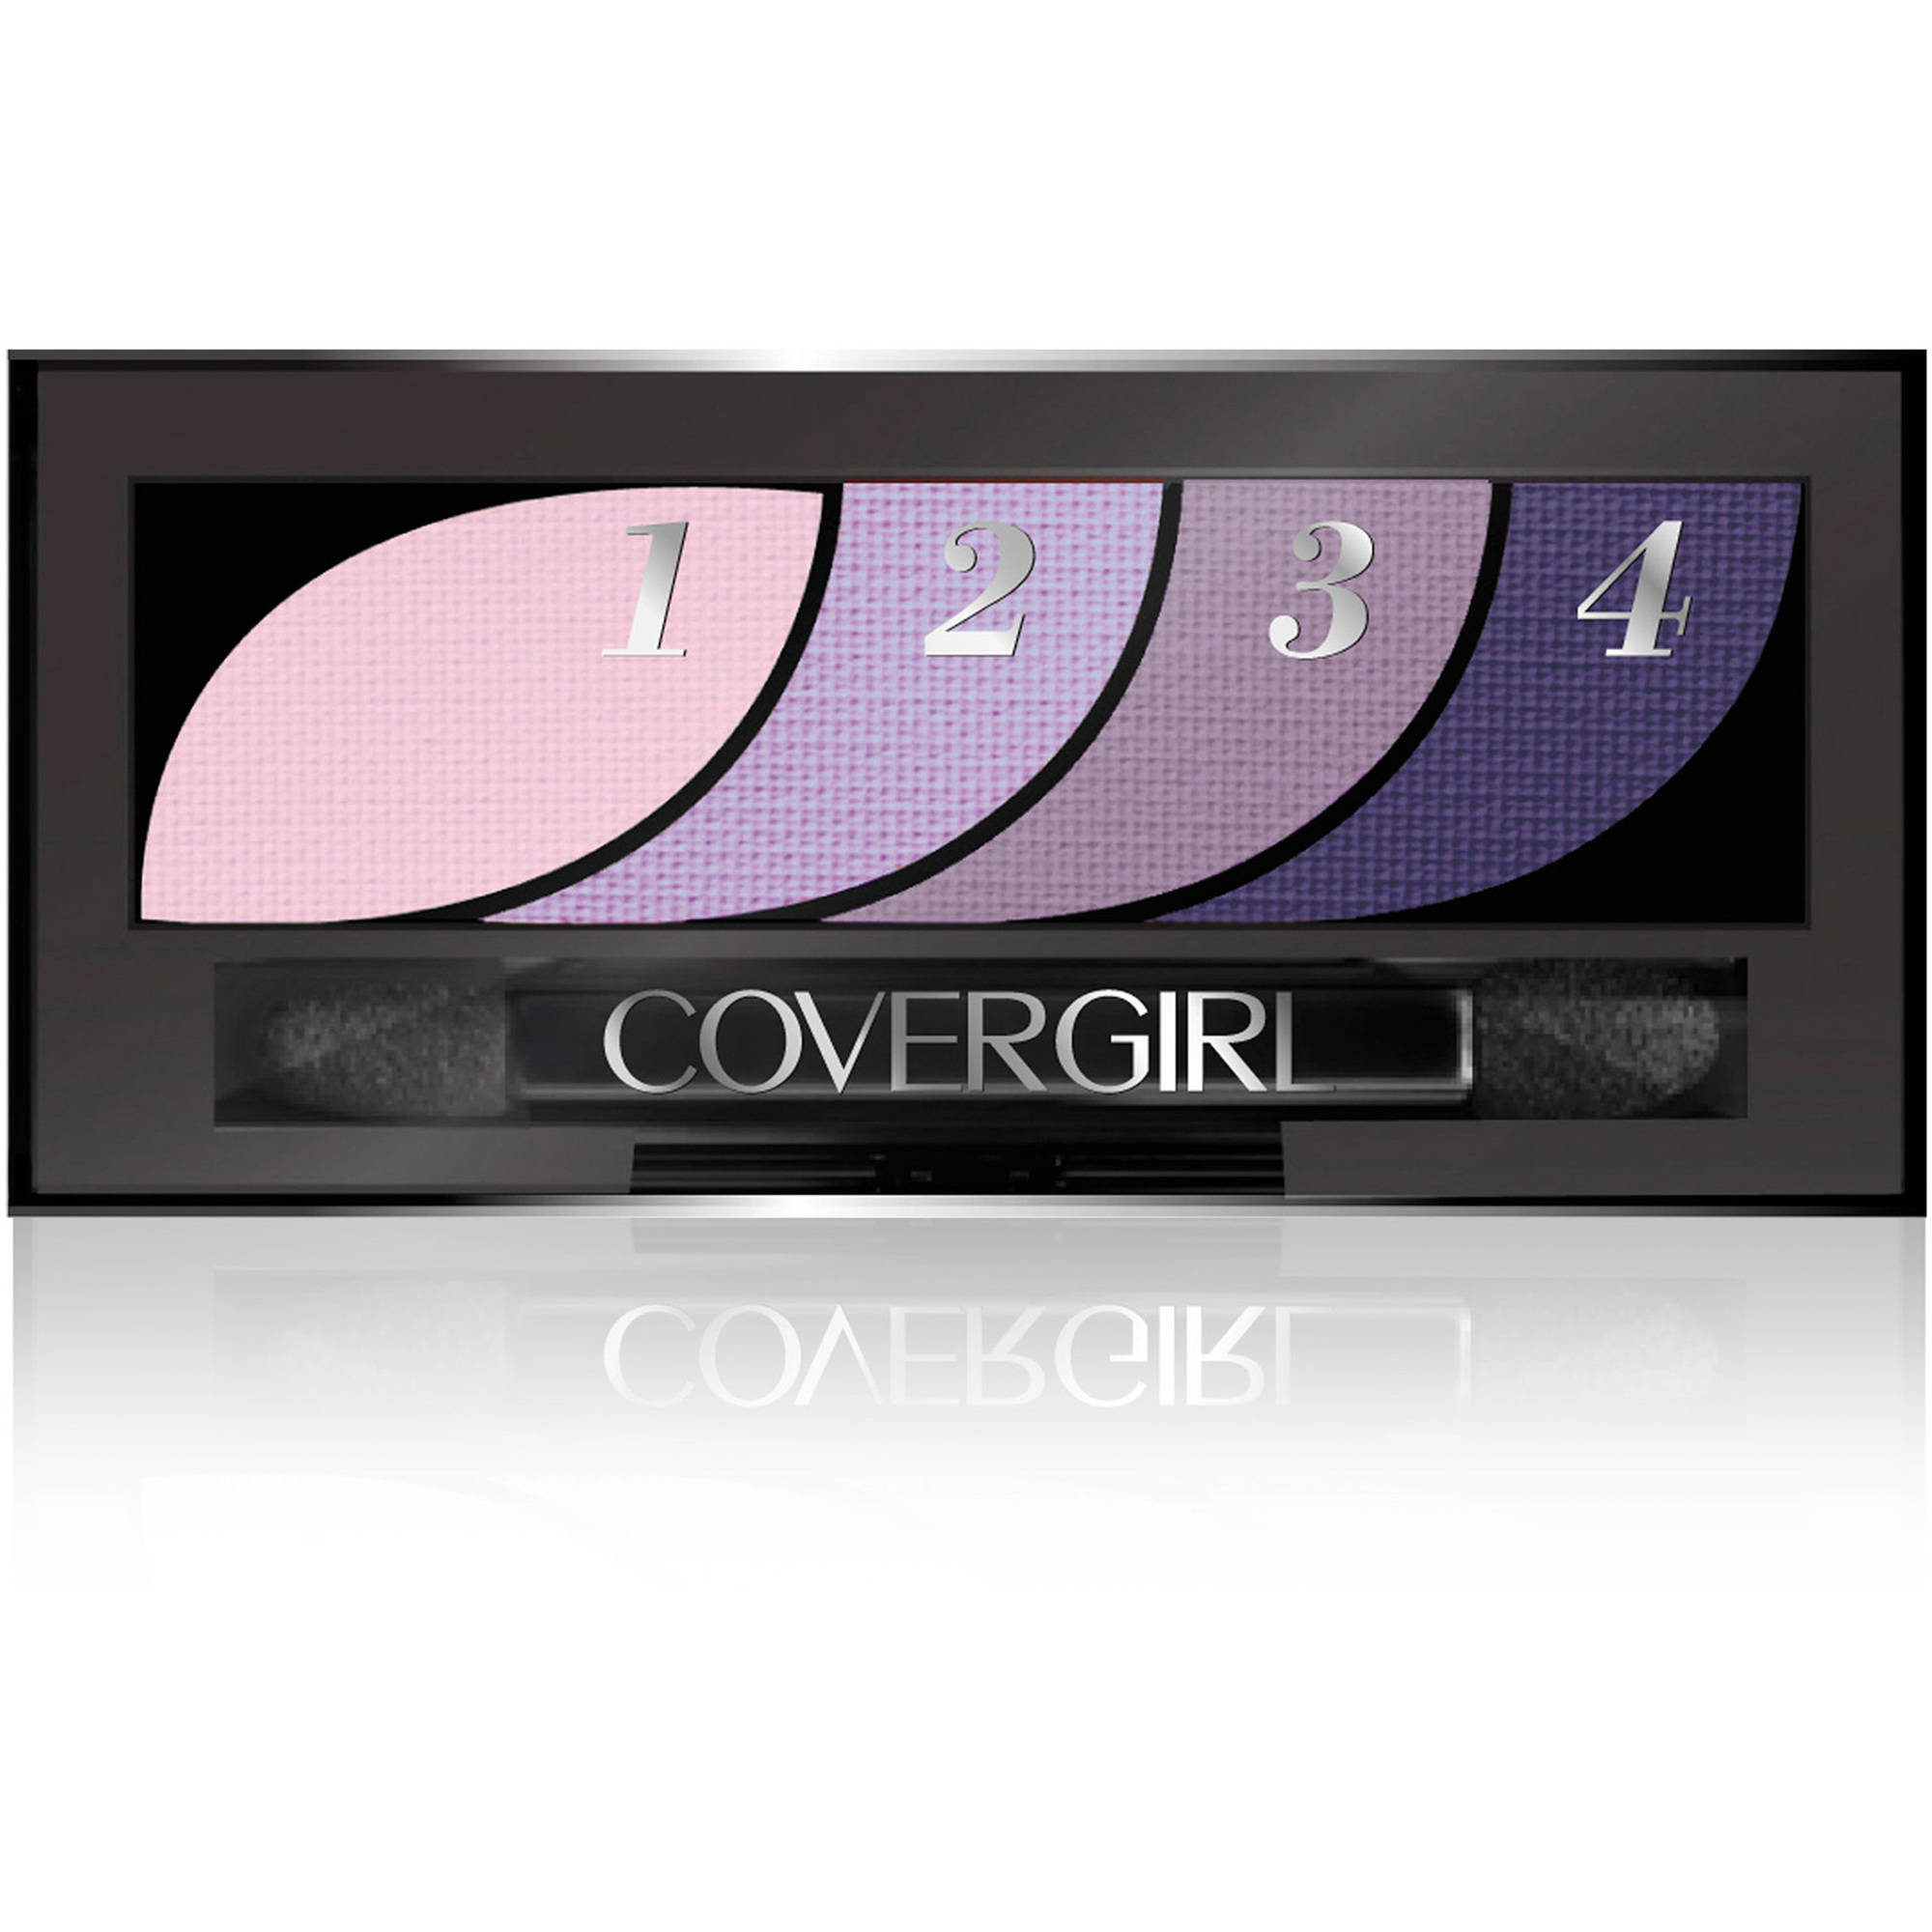 COVERGIRL Eye Shadow Quads, Va-Va Violets, 0.06 oz